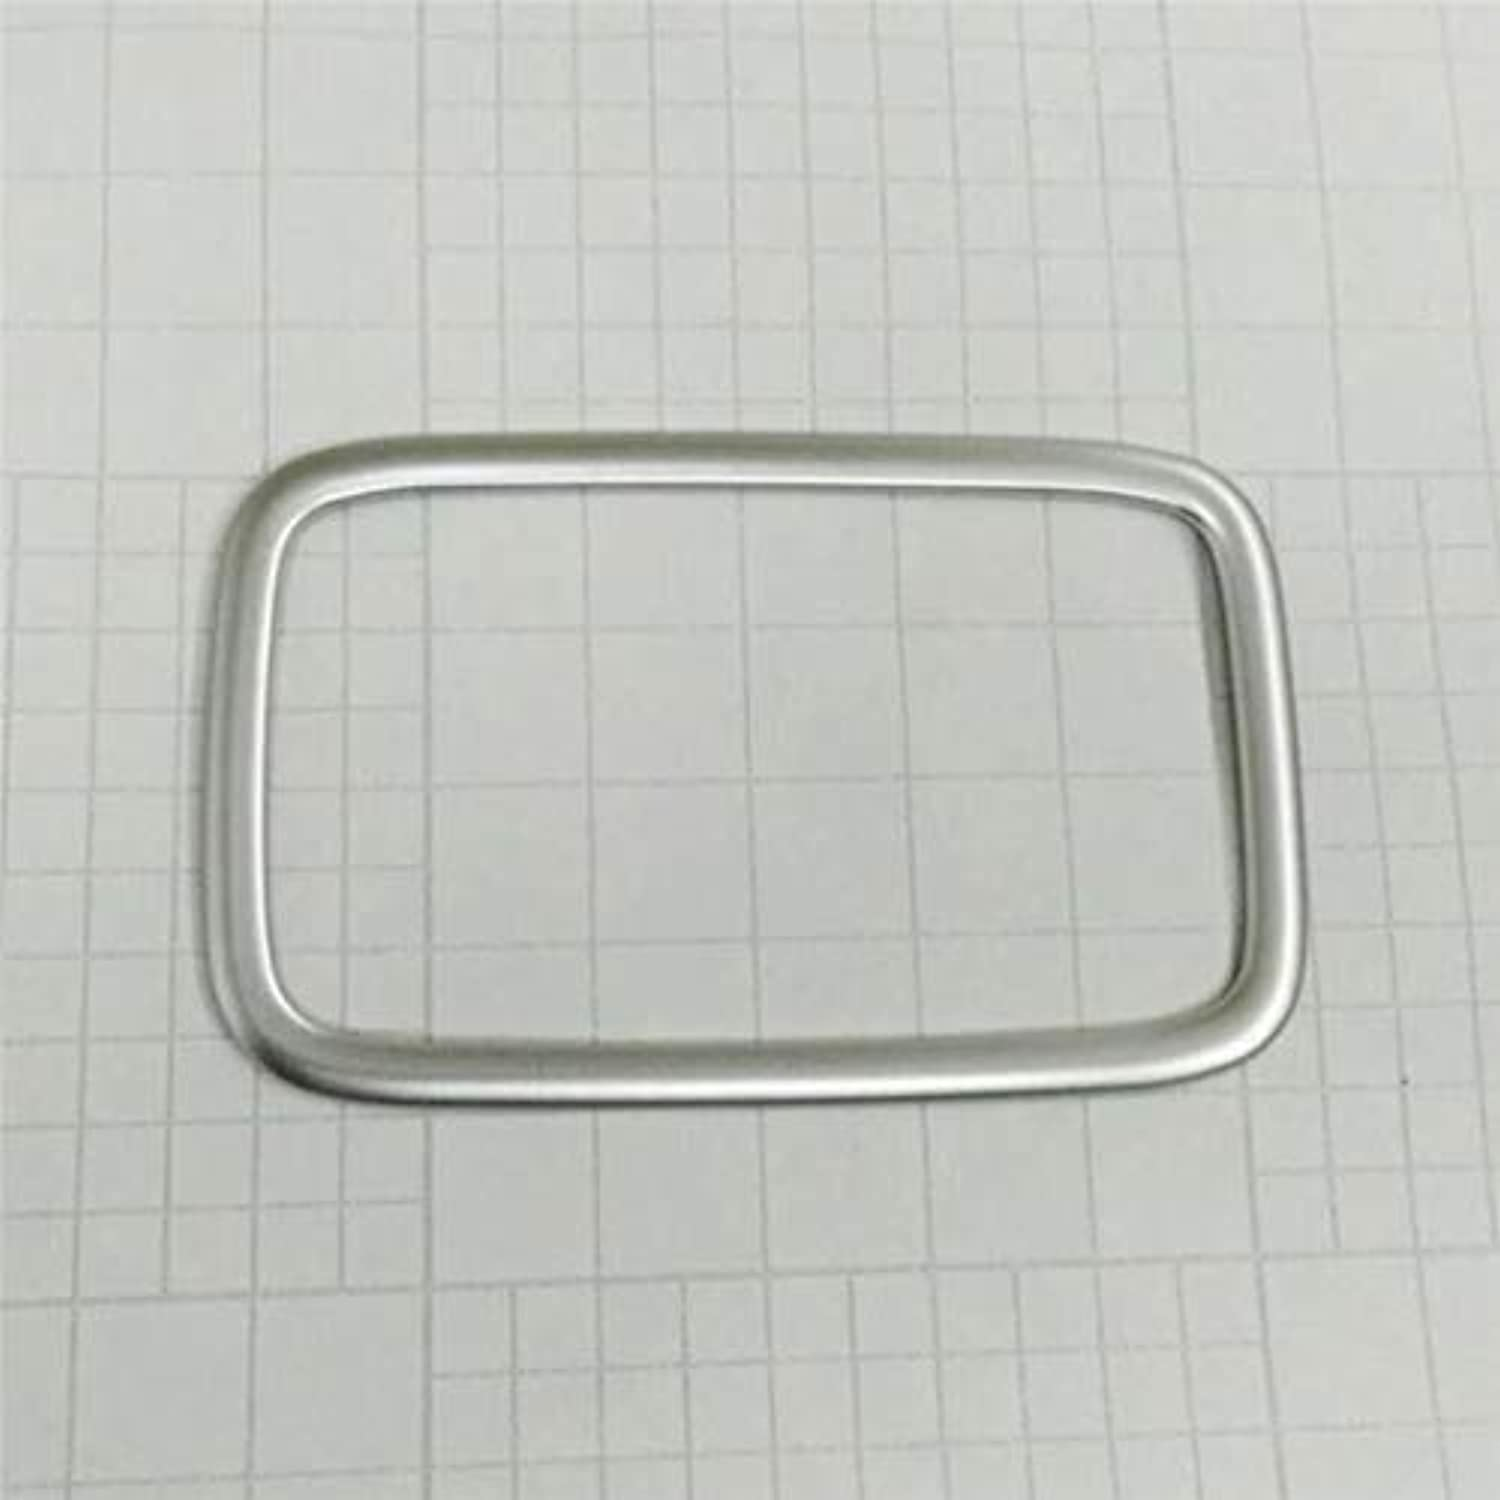 Jicorzo - ABS Car Front + Rear Reading Light Cover Trim sticker Car Accessories Styling Fit for Hyundai Elantra Avante 2016 2017